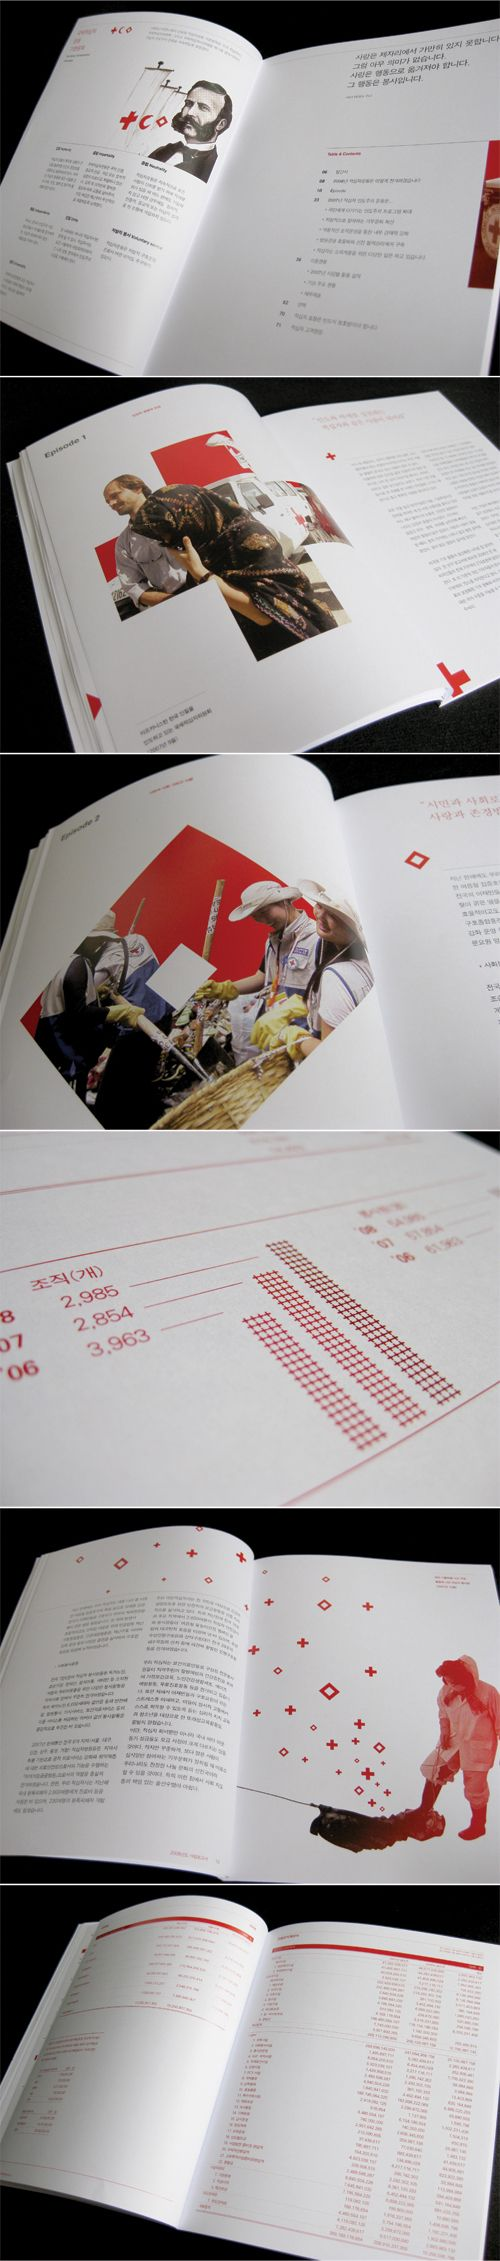 silhumsil* : 대한적십자 애뉴얼 리포트 | Red Cross Annual Report (시안)